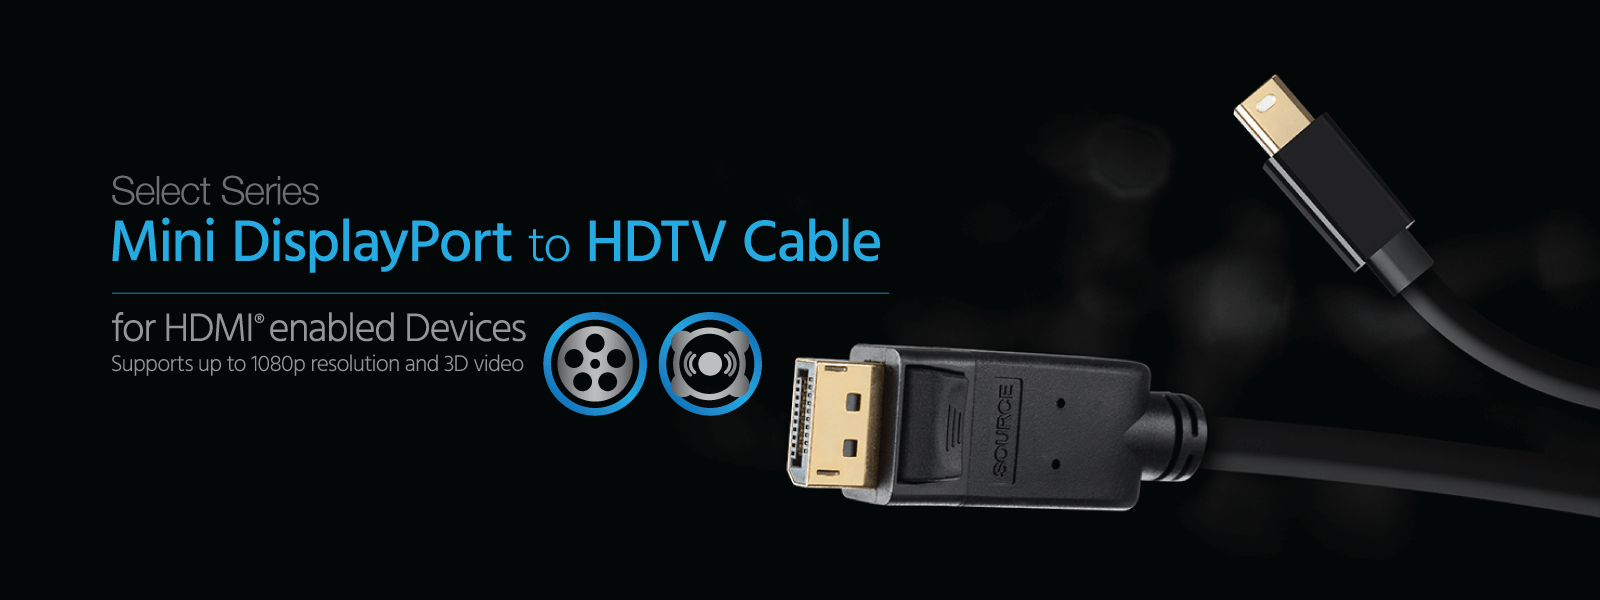 DisplayPort to HDTV Cables